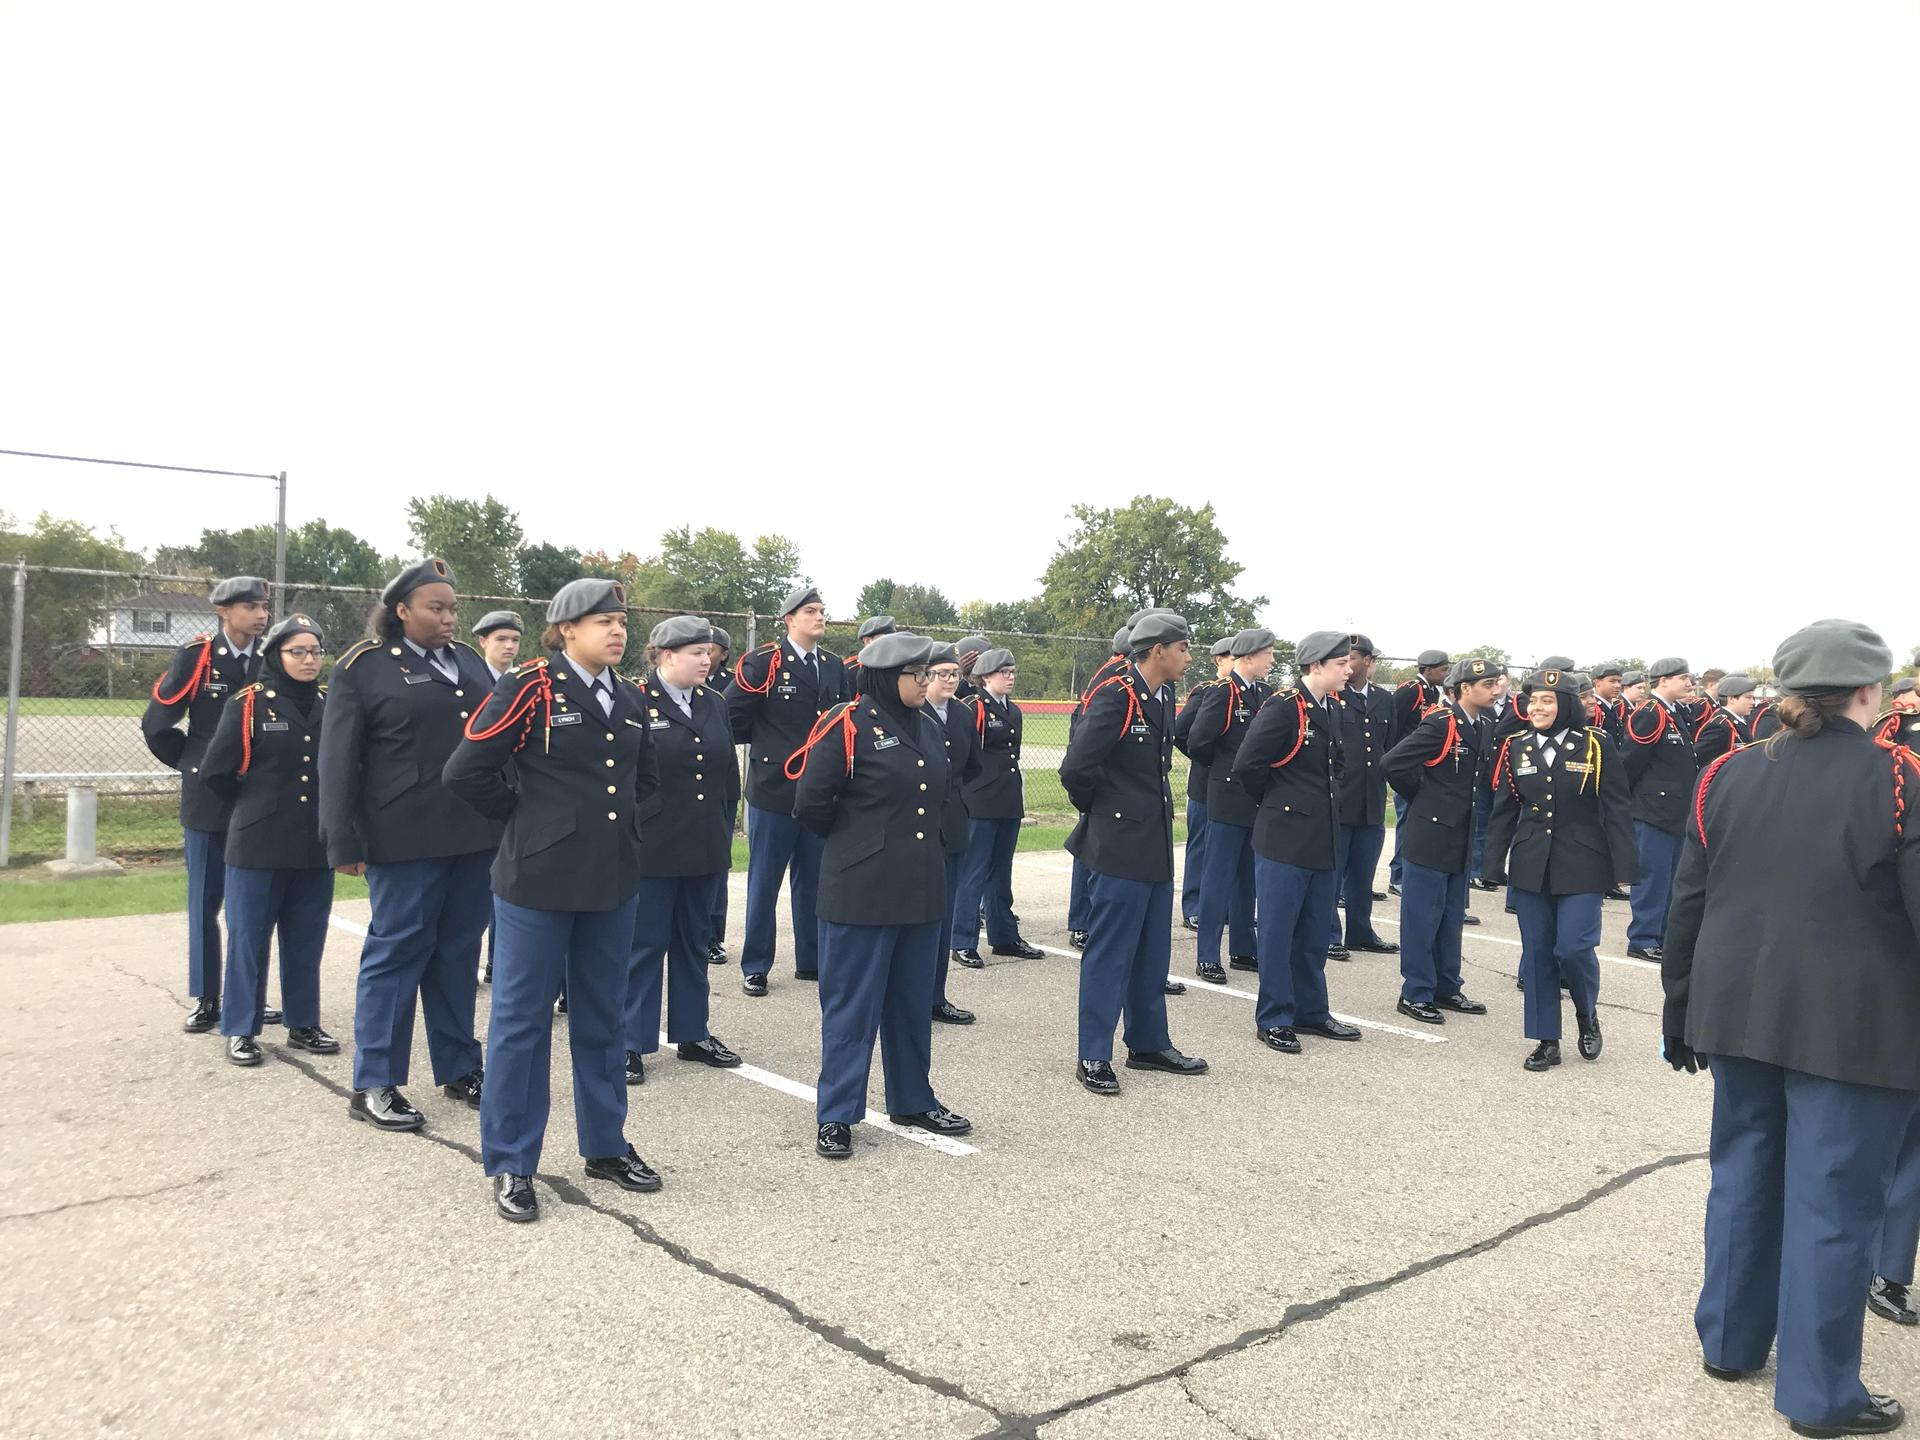 Cadets in formation at the homecoming parade